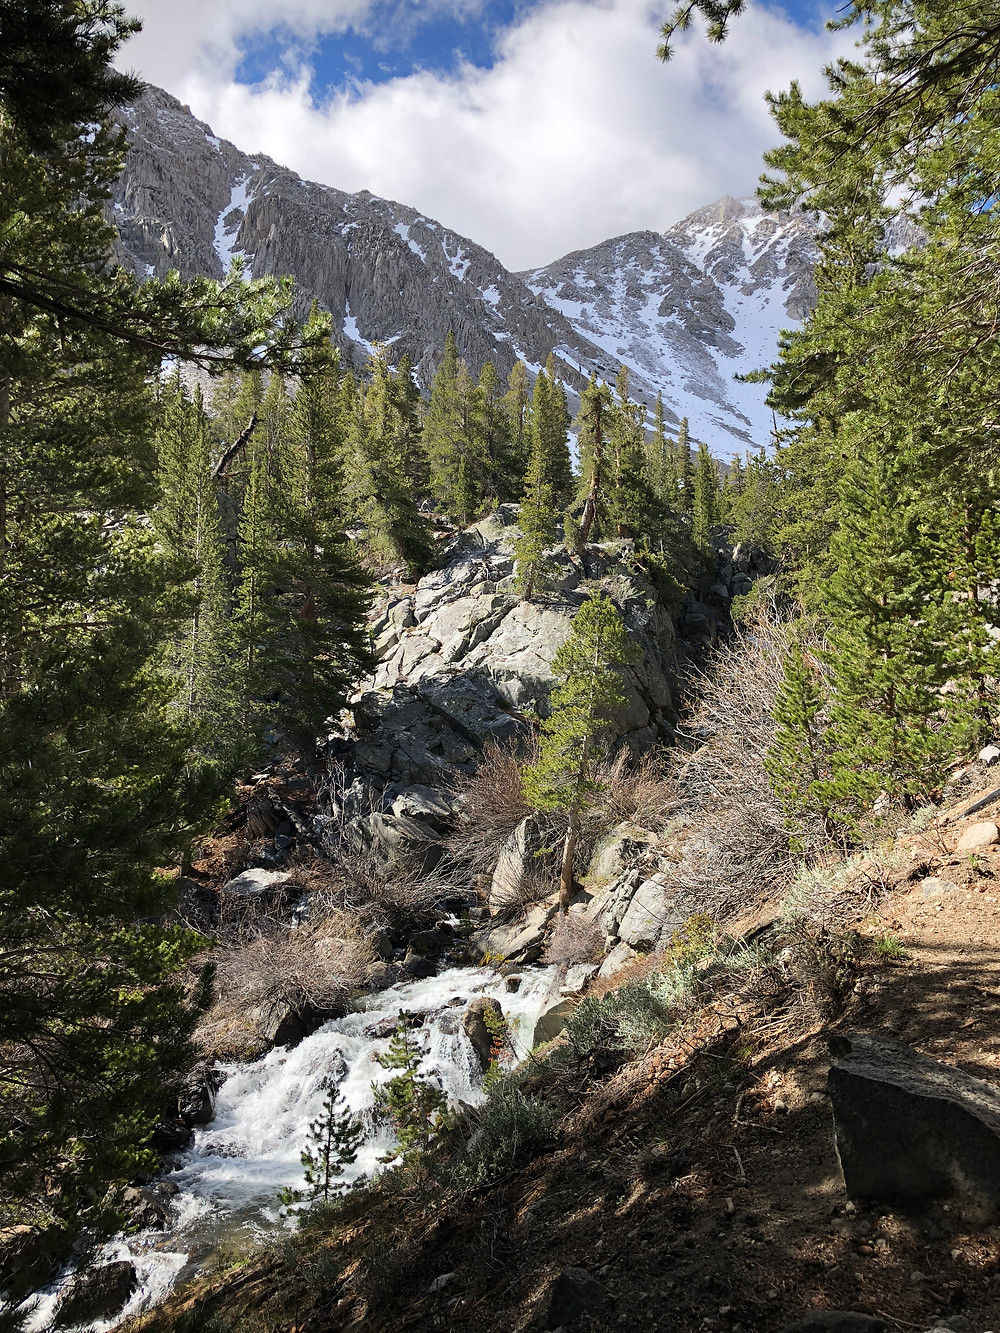 Alpine Scenery at North Fork Trail in Big Pine